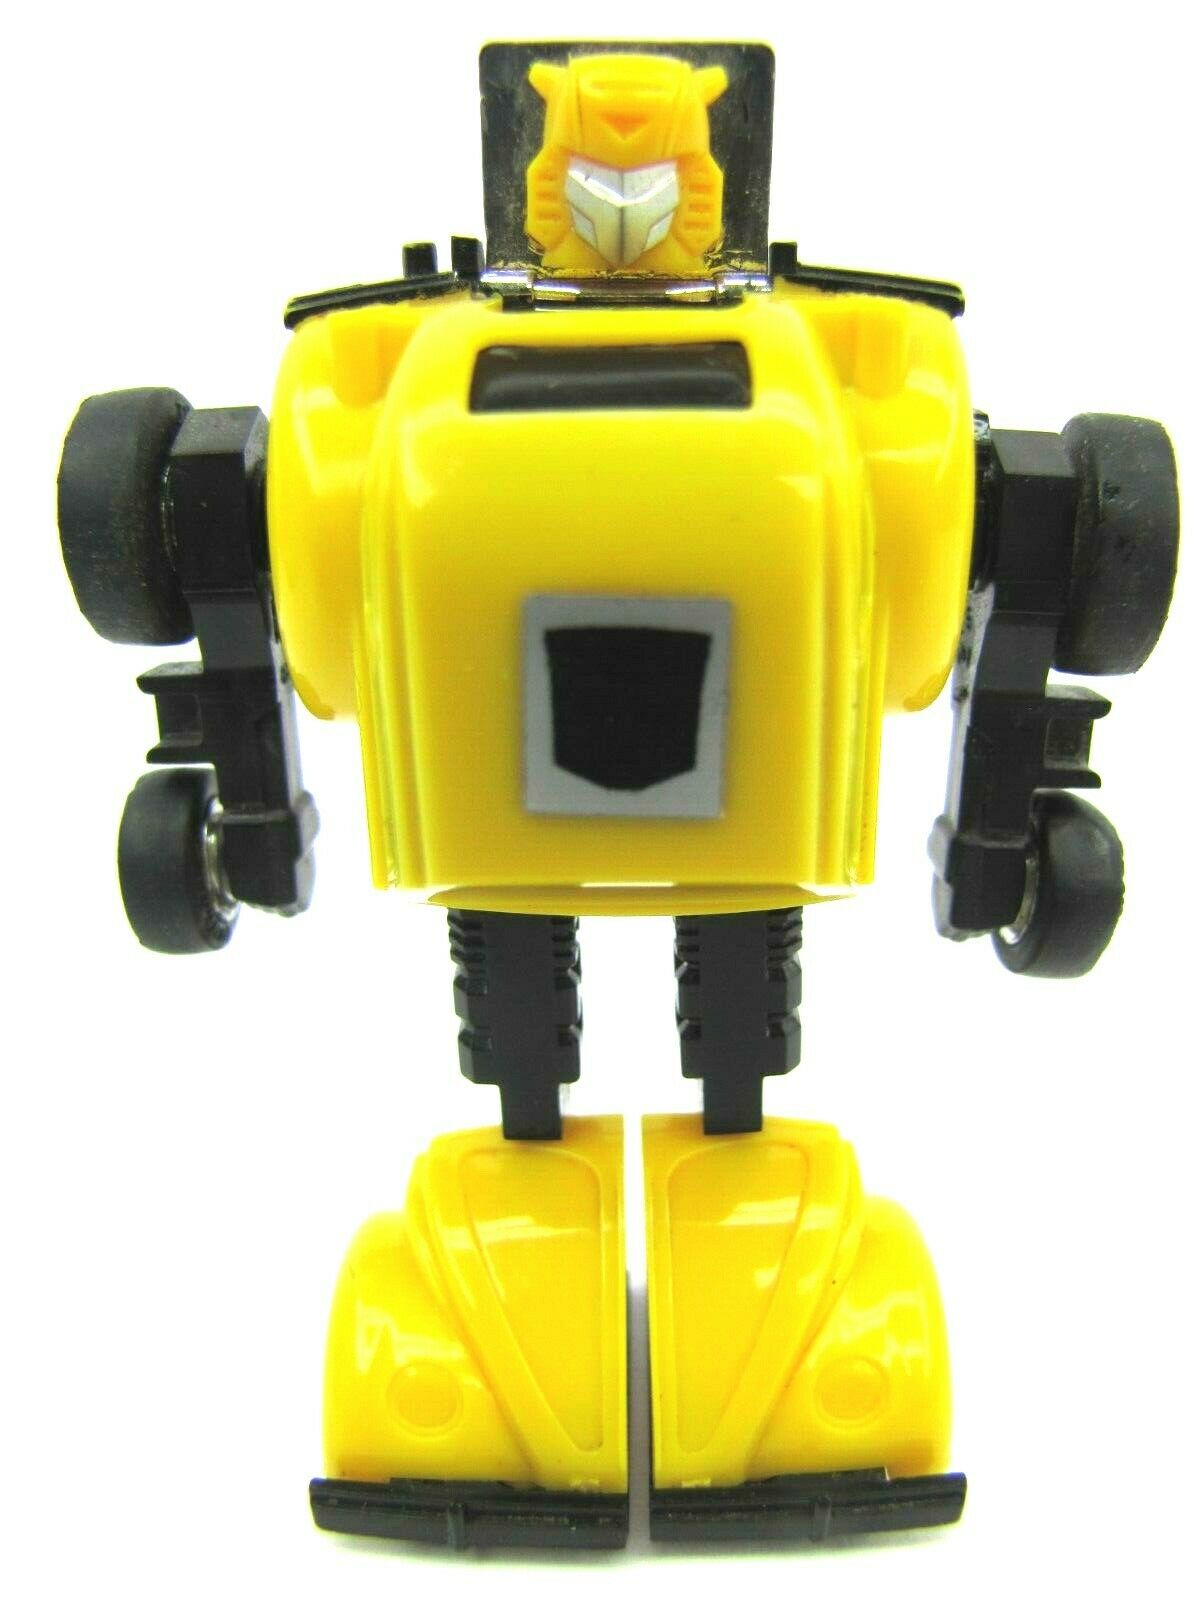 1984 Transformers Generation 1 Minibot Autobot BUMBLEBEE Complete